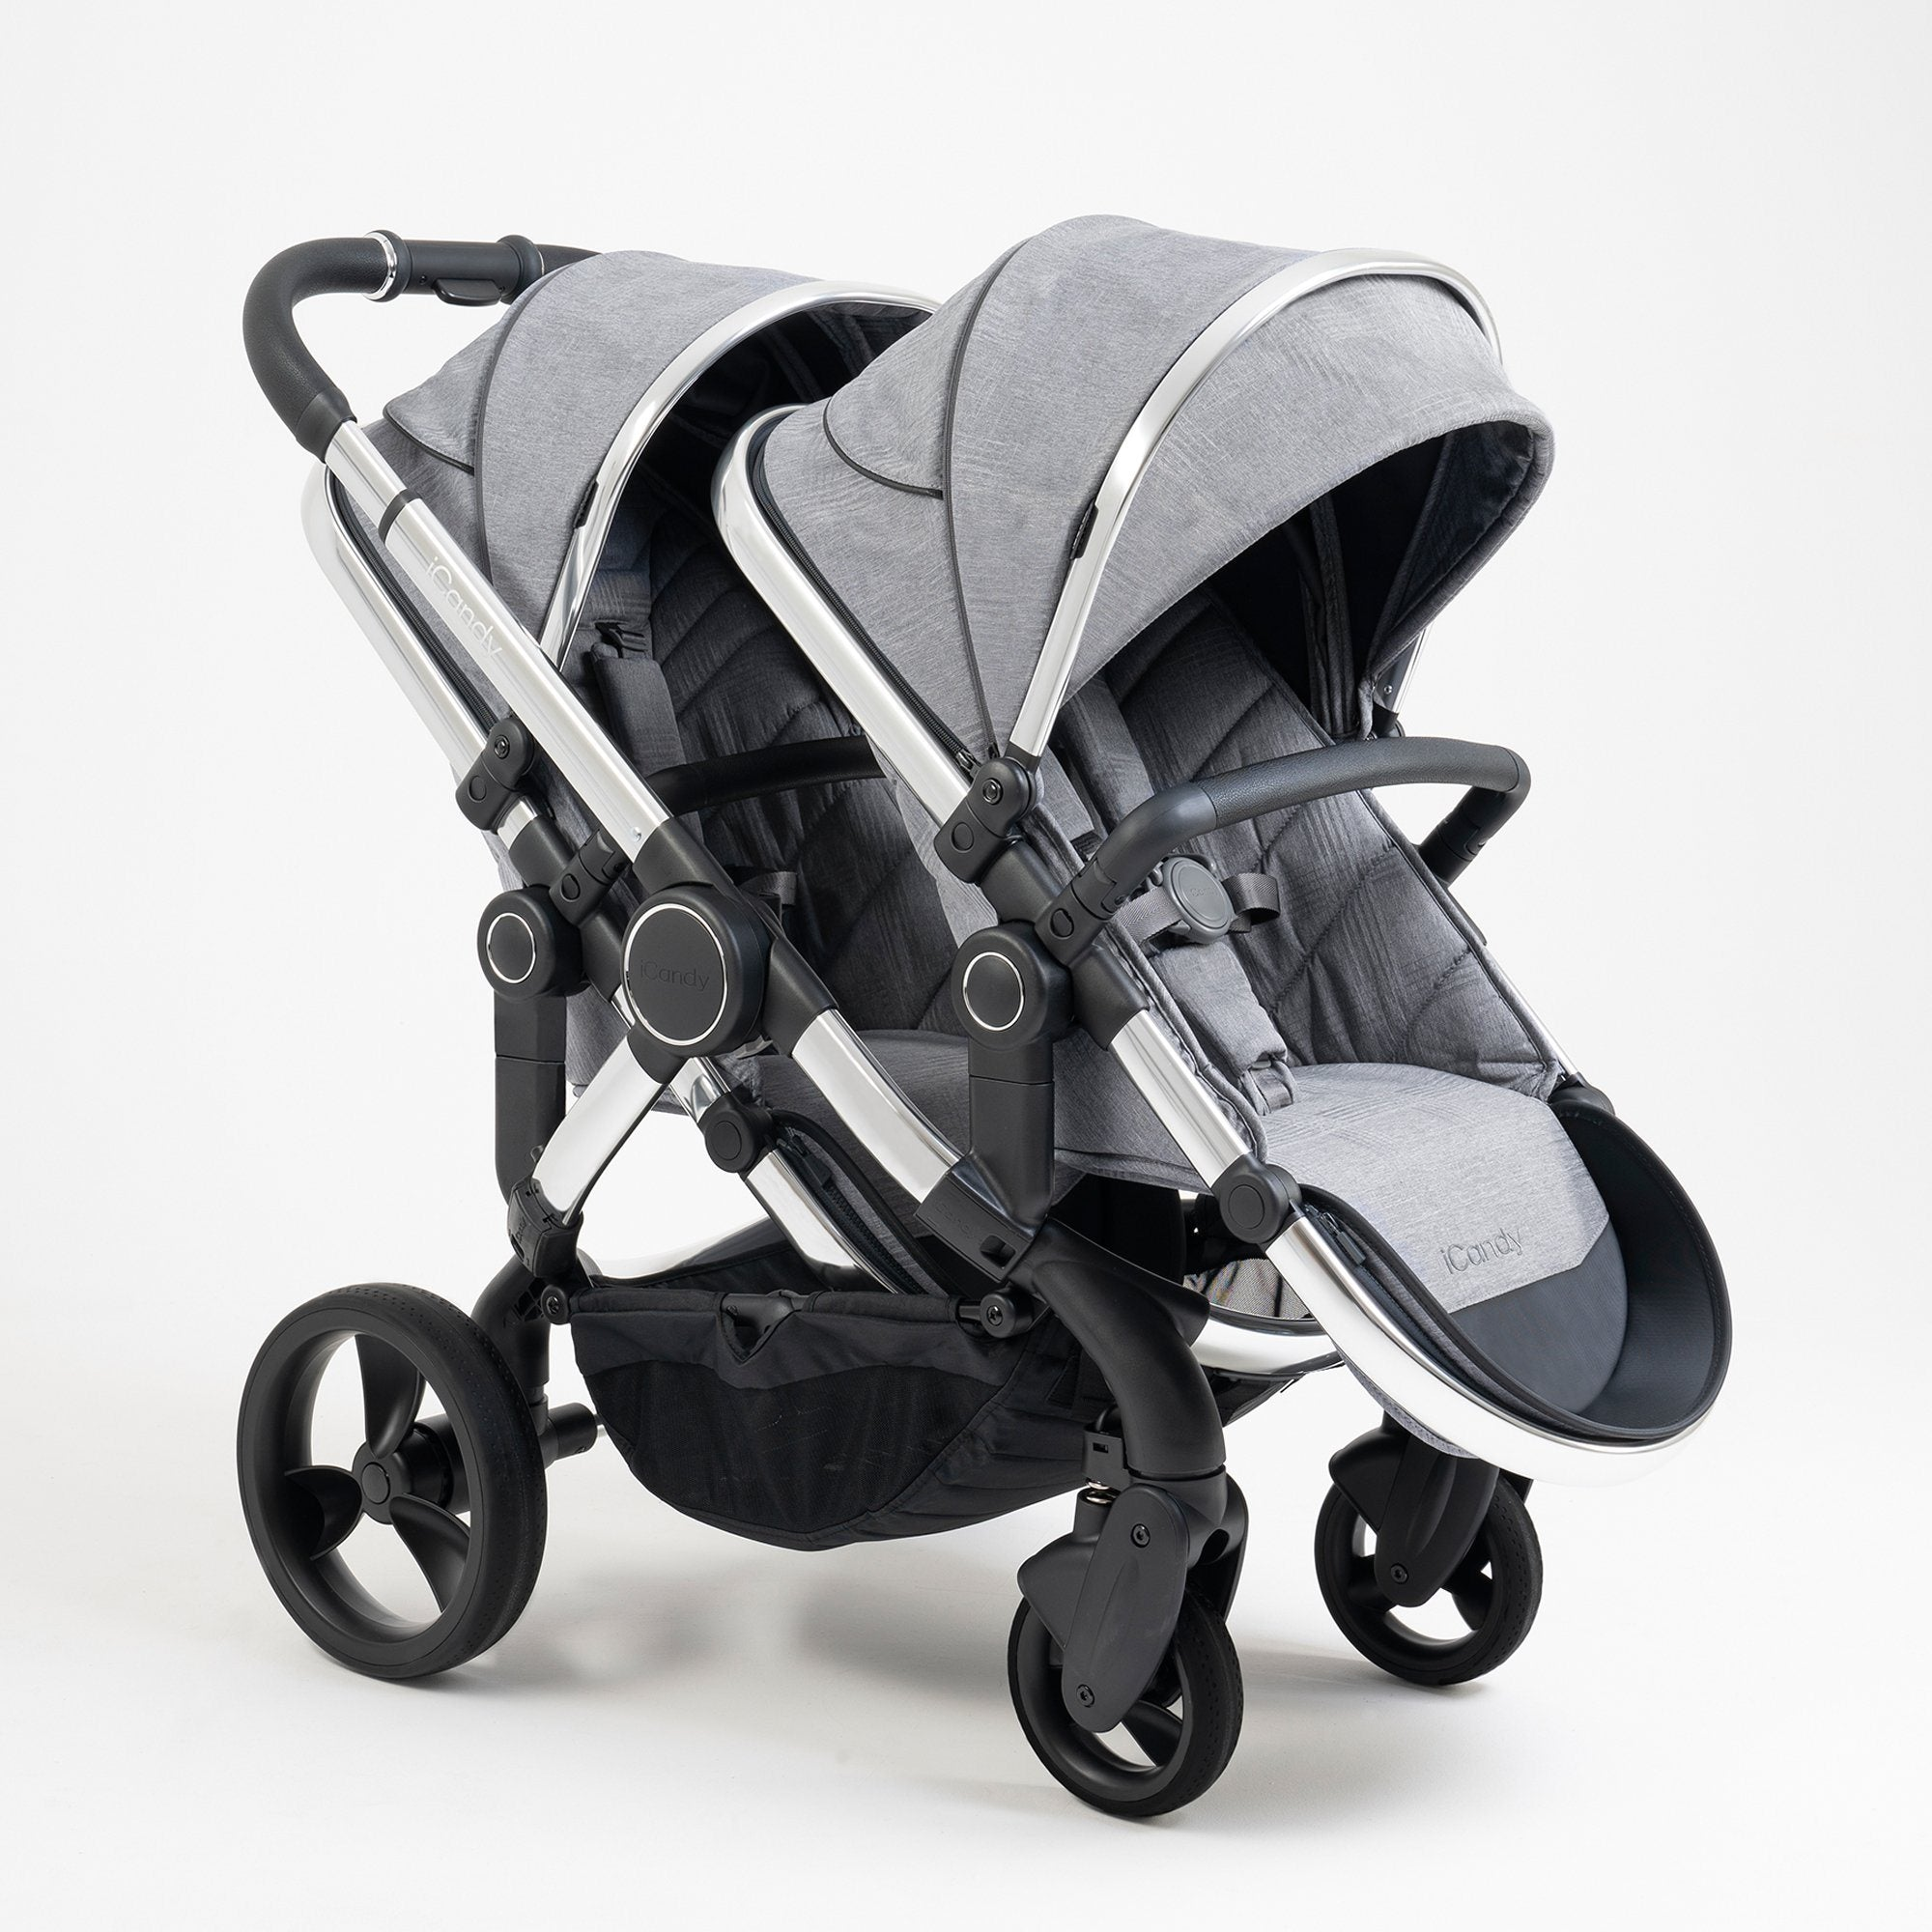 iCandy Peach Double - Chrome/Light Grey Check - Pushchair Expert